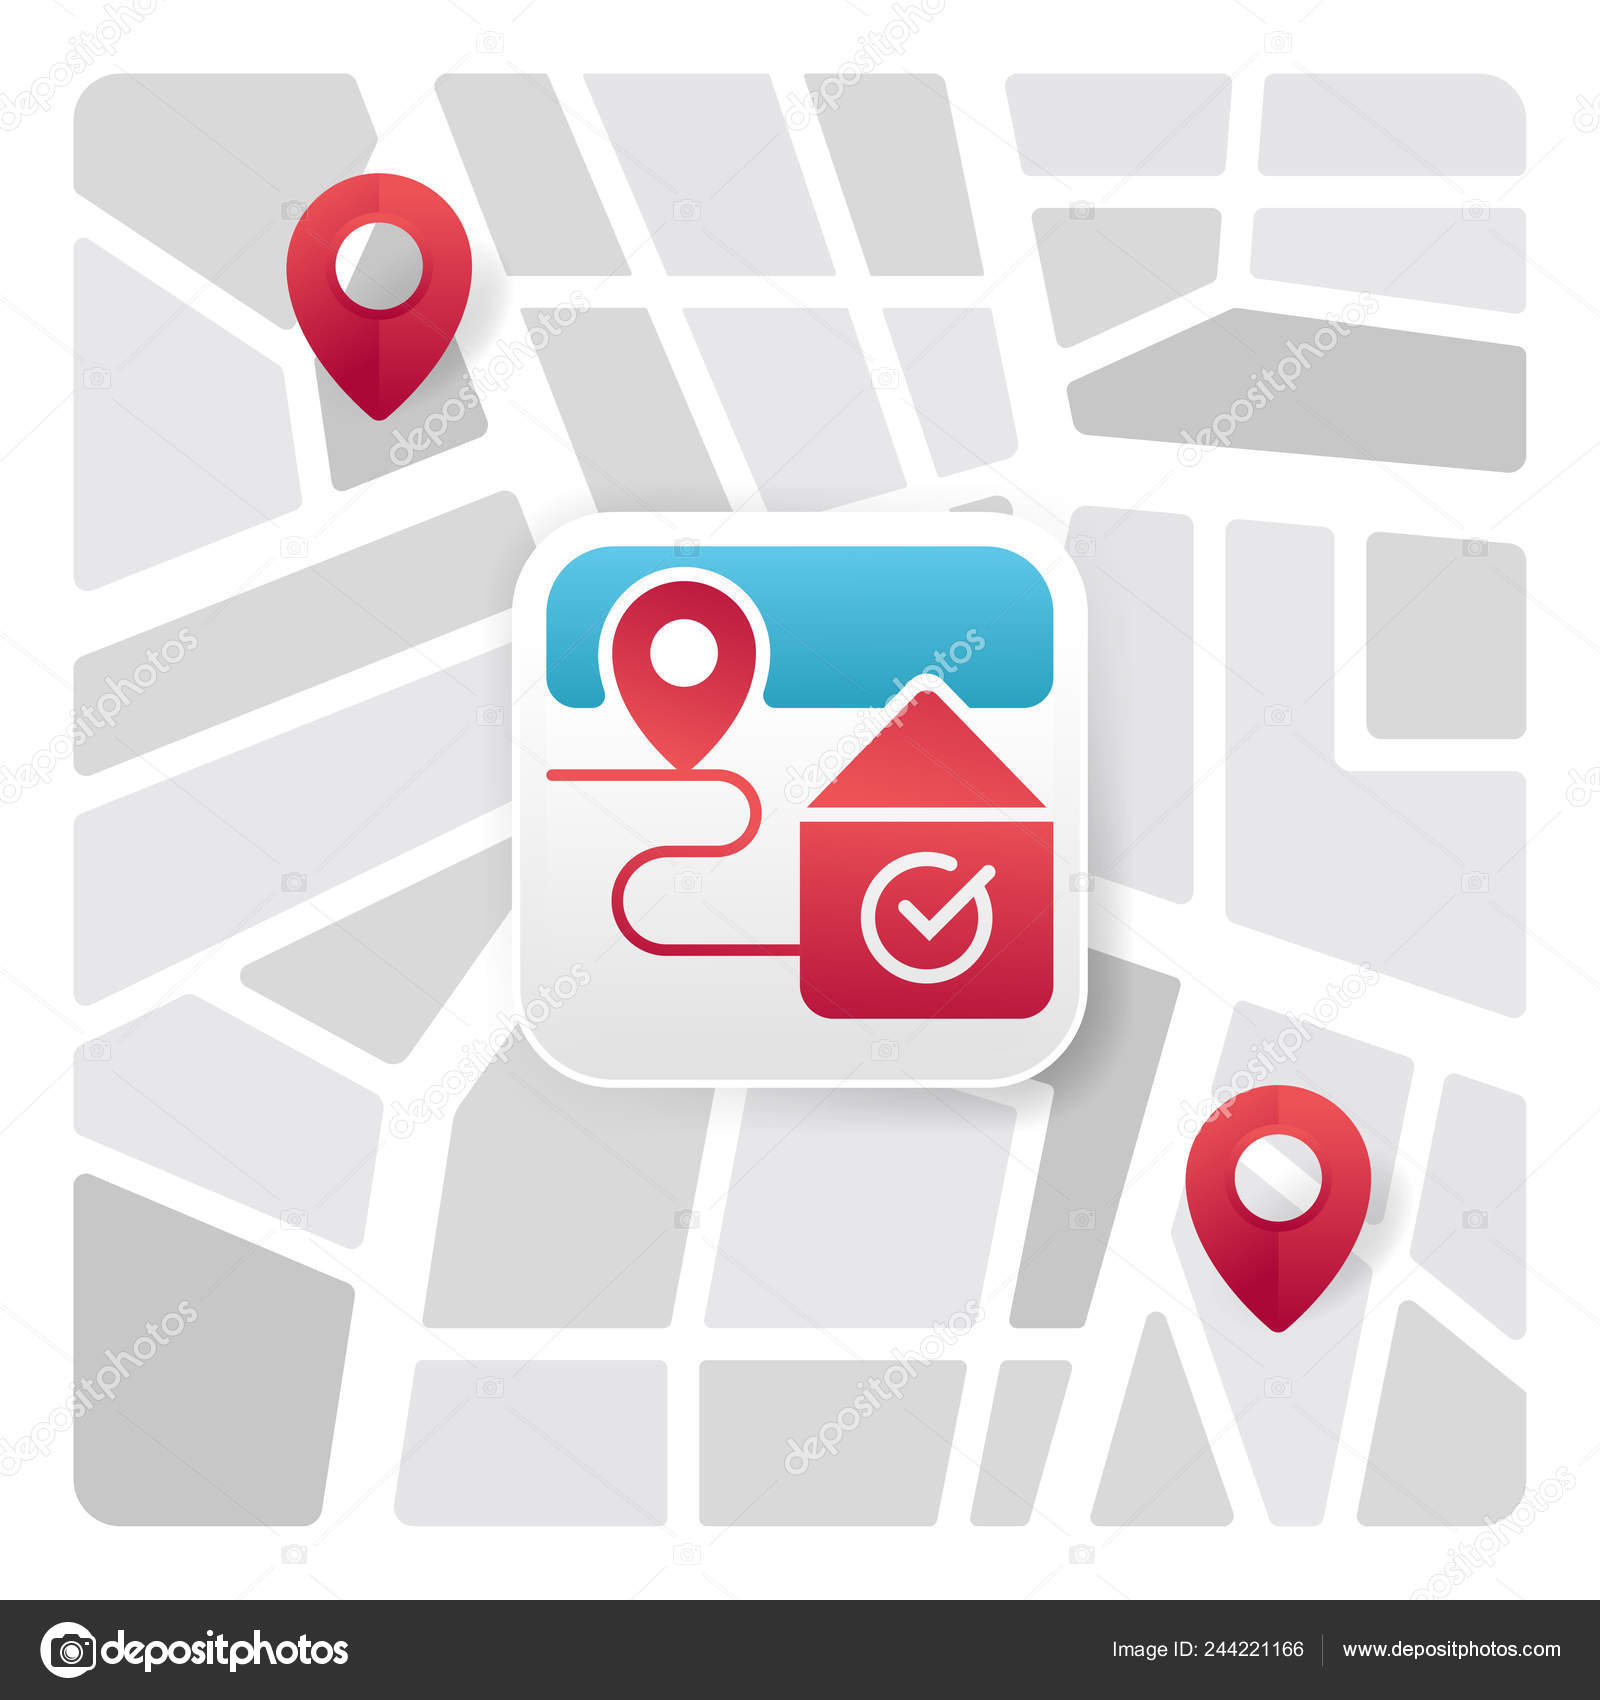 Map App Icon Modern Logo Icon City Point Place Pin — Stock Vector Yahoo Map App on apple app, gdrive app, hotmail app, facebook app, sims freeplay app, fiverr app, fox sports app, espn scorecenter app, aol app, myspace app, talktalk app, amazon app, battle.net app, fall app, traductor app, ebay app, google app, vevo app, gmail app,